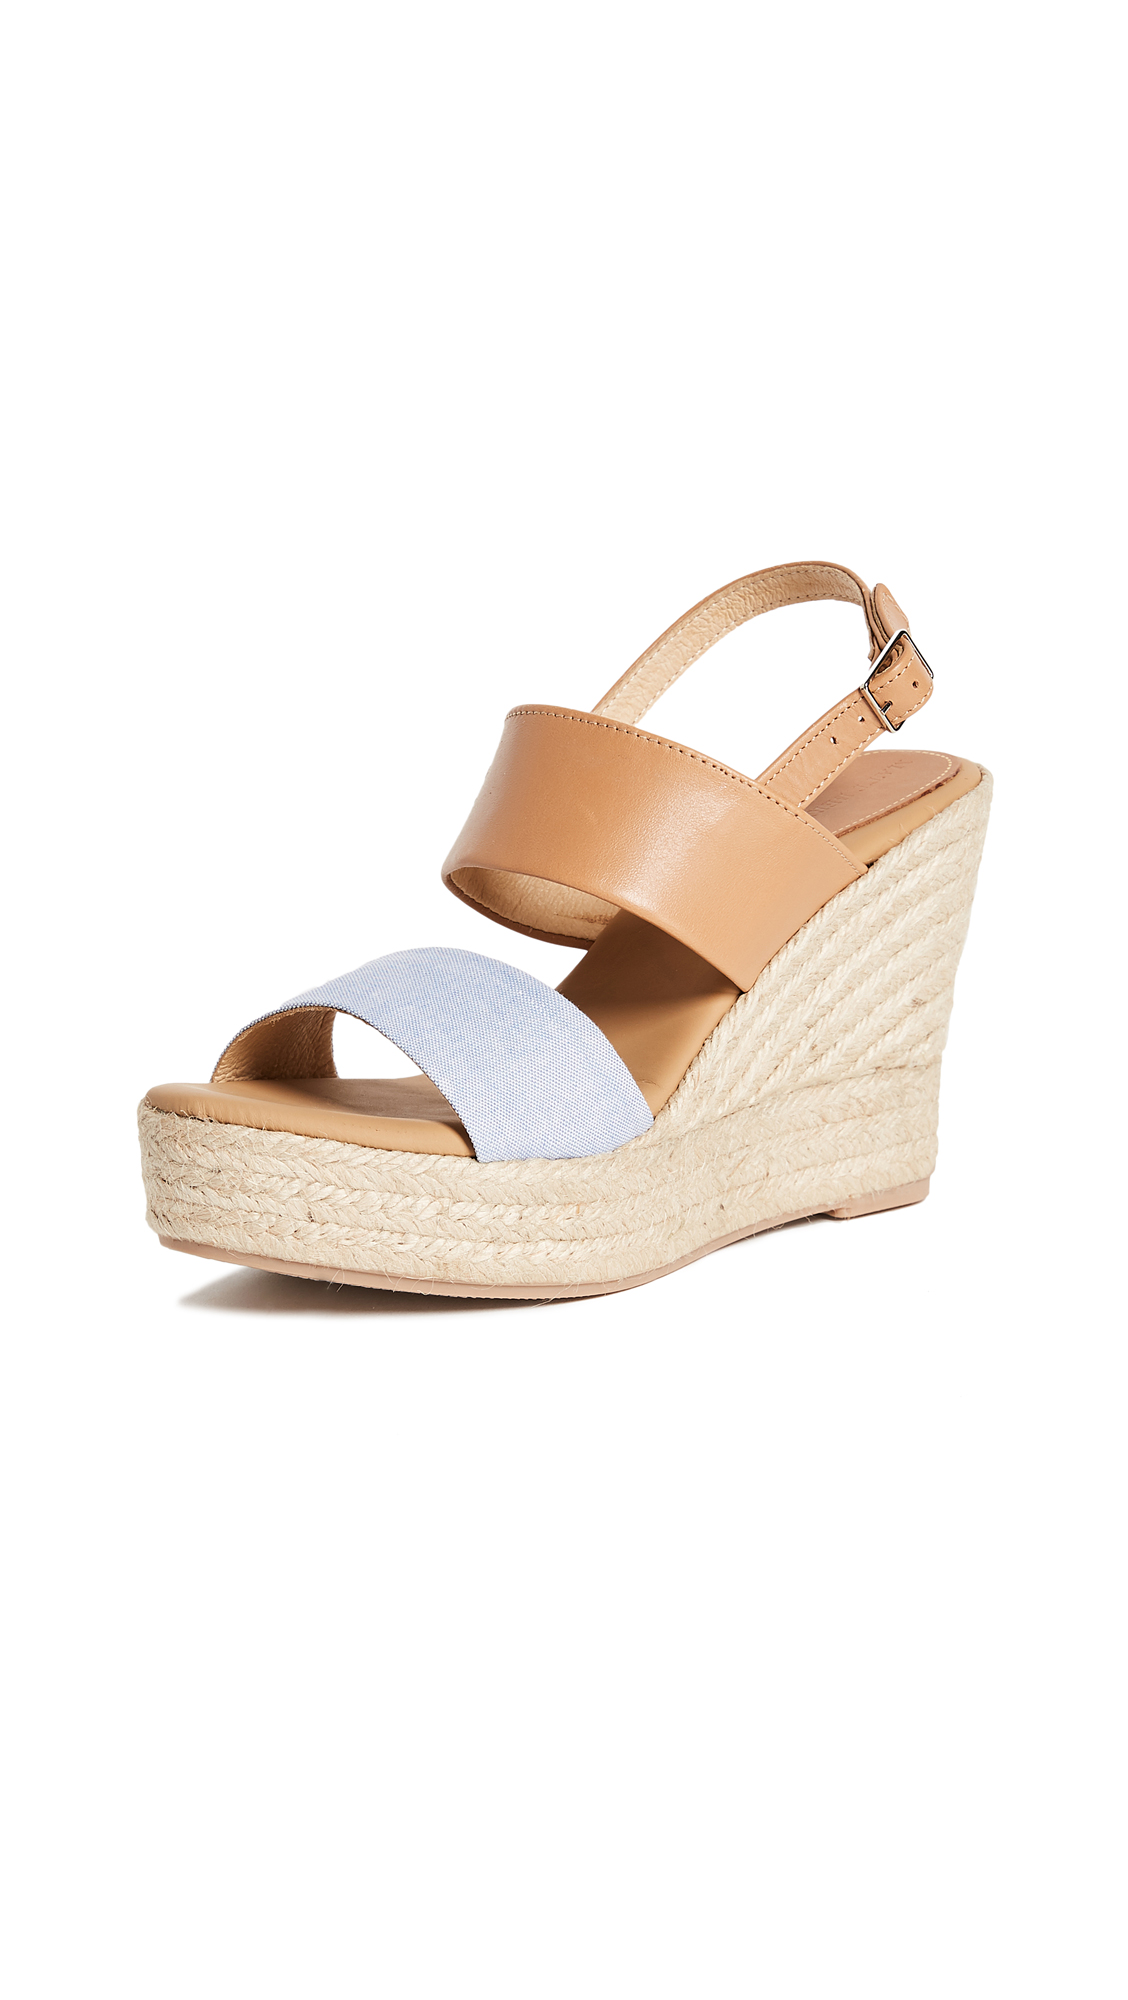 Matt Bernson Marseille Wedges - Wheat/Chambray